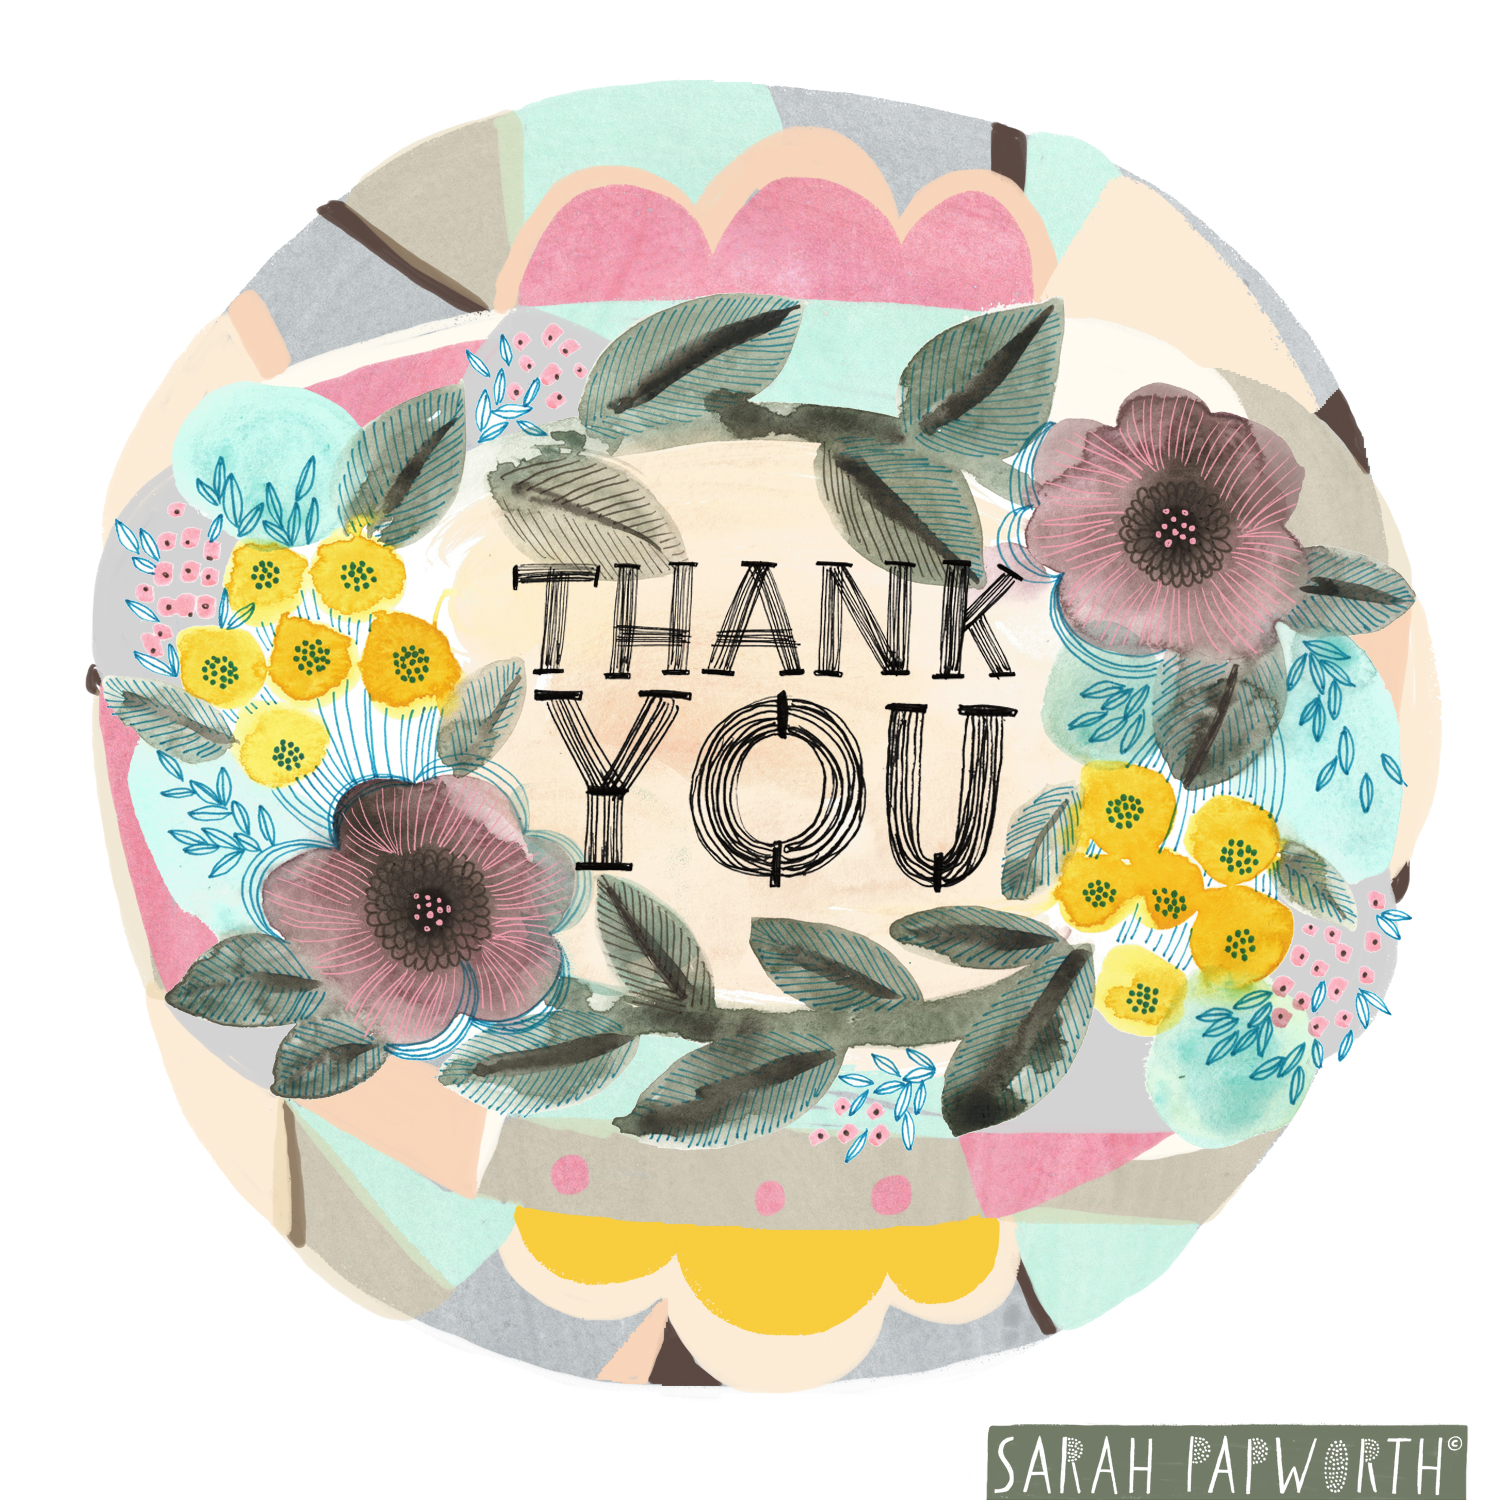 thank you greeting card world design hand lettering sarah papworth.jpg